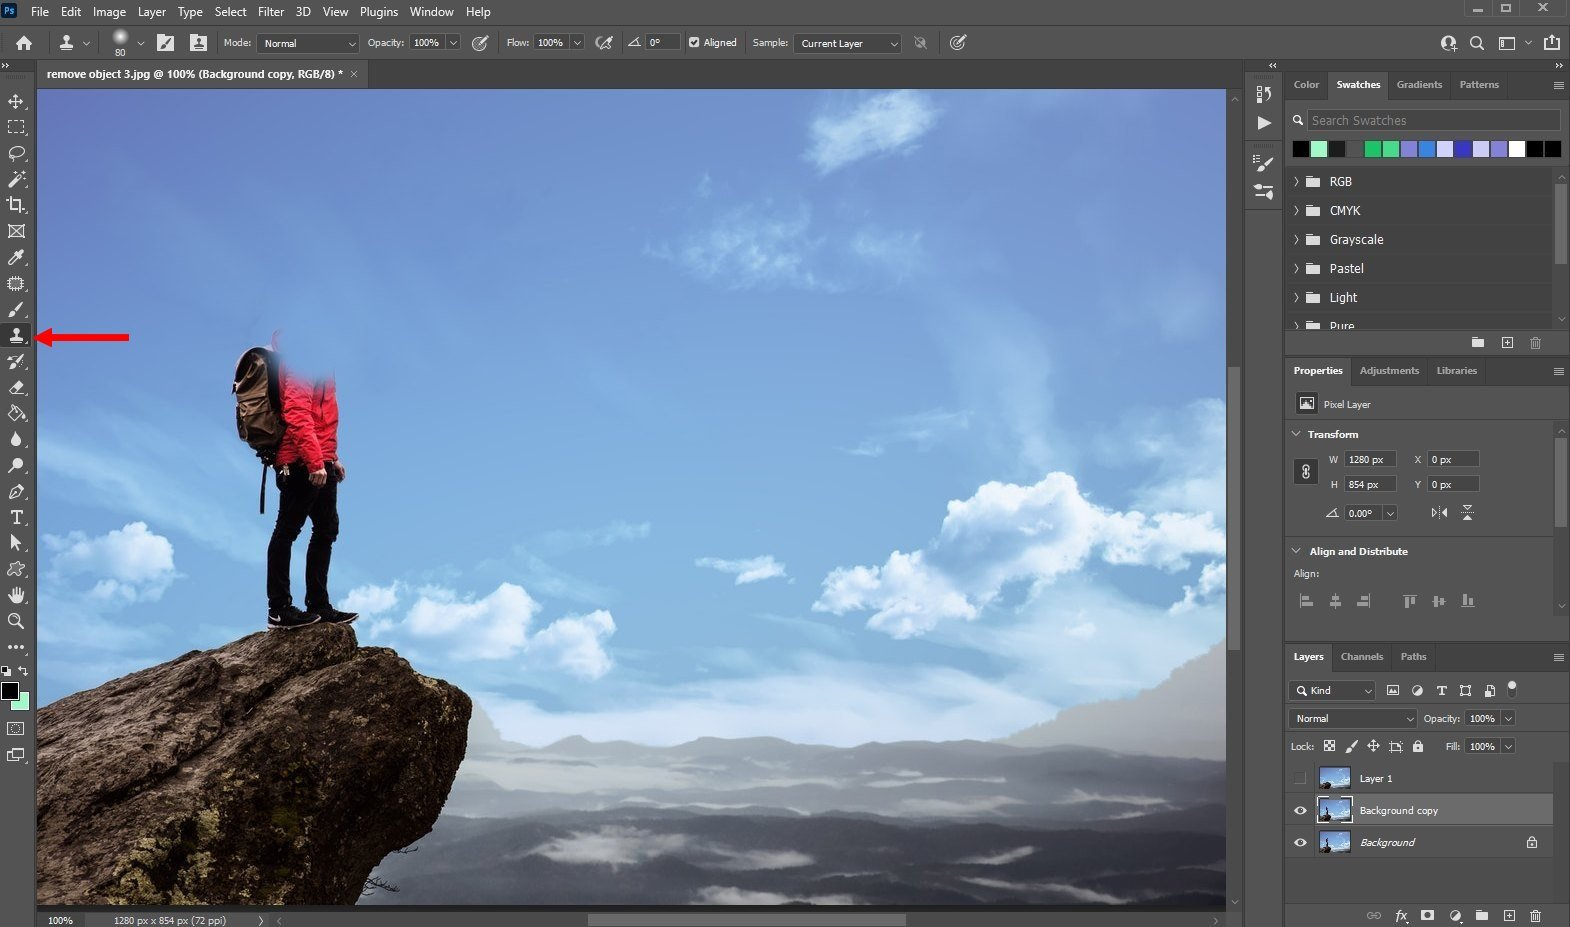 remove an object in photoshop - using clone tool - 1